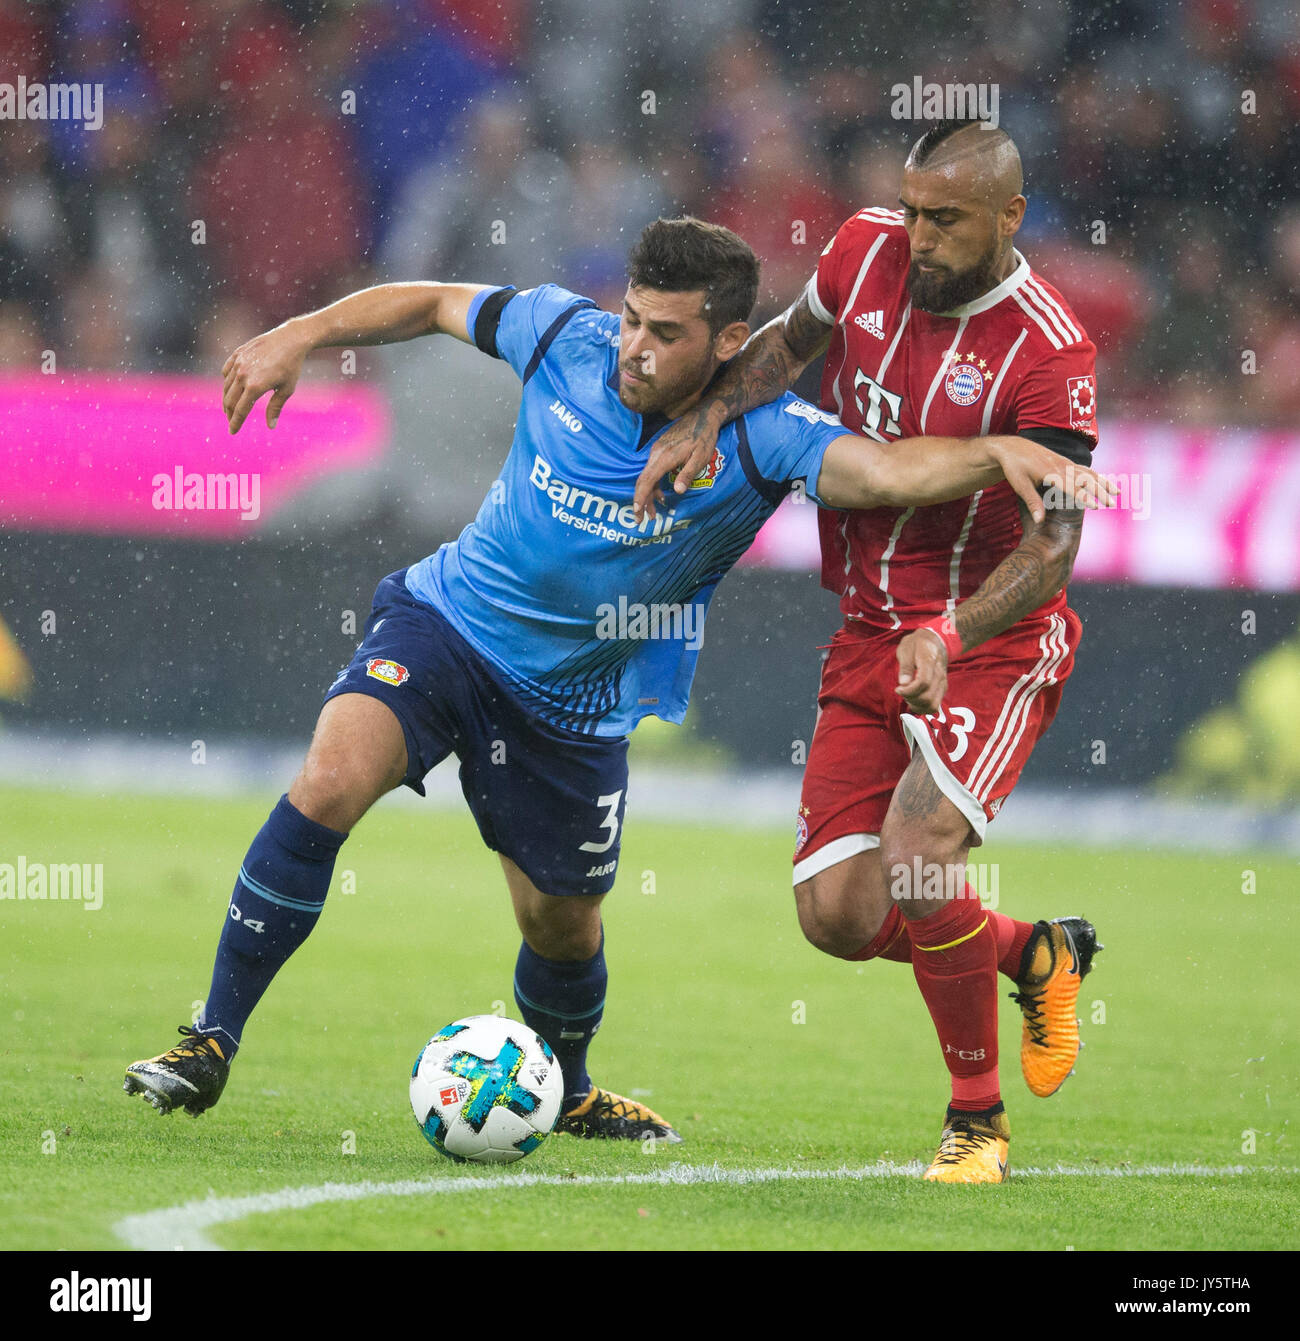 Deutschland. 18th Aug, 2017. Kevin VOLLAND (Leverkusen) im Zweikampf mit Arturo VIDAL (FC Bayern) GES/ Fussball/ 1. Bundesliga: FC Bayern Munich - Bayer 04 Leverkusen, 18.08.2017 -- Football/ Soccer 1st. German Bundesliga Division: Bavaria Munich vs Bayer 04 Leverkusen, Munich, August 18, 2017 | Verwendung weltweit Credit: dpa/Alamy Live News - Stock Image